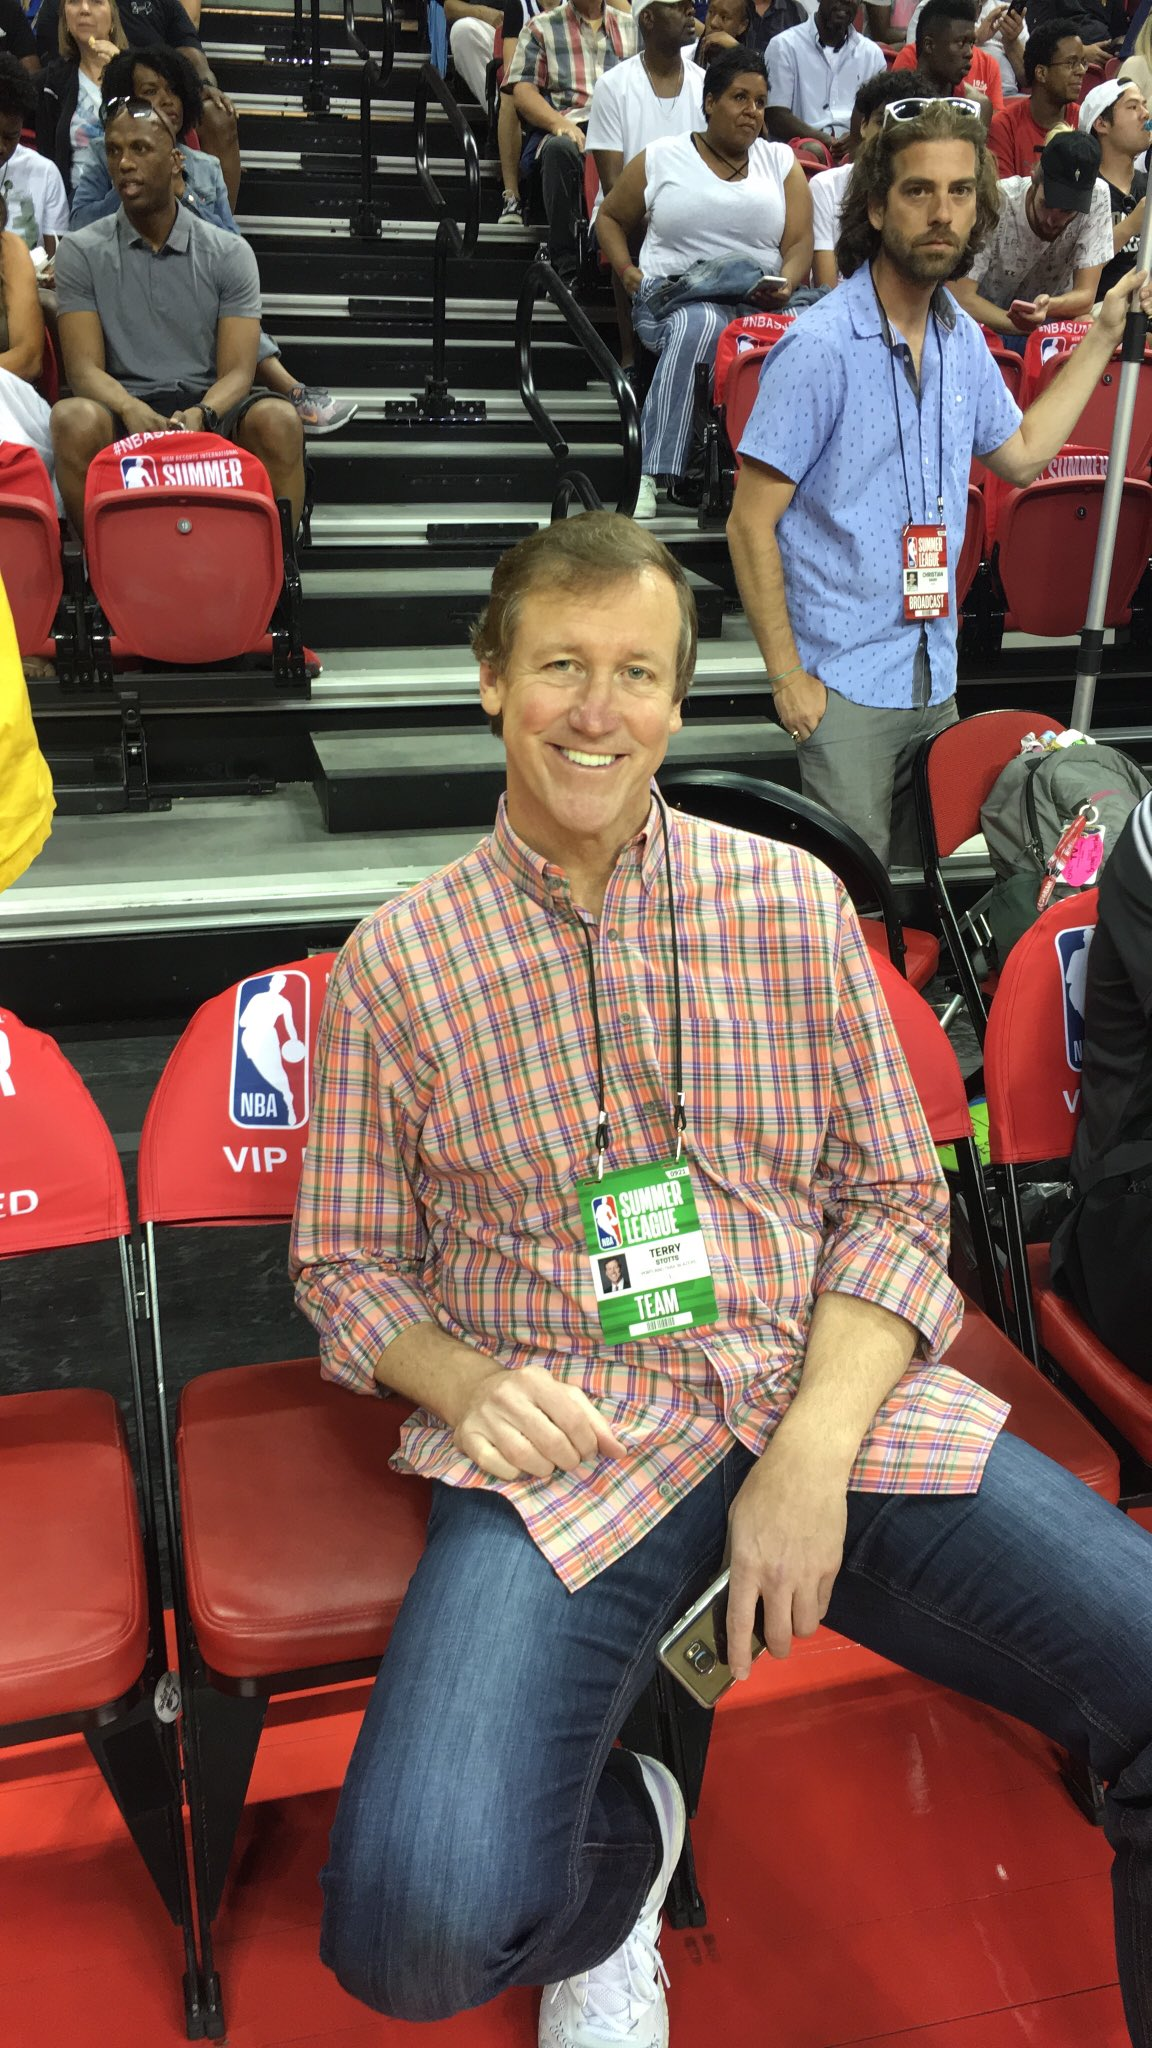 Coach Terry Stotts (@trailblazers) on hand for #SemifinalSunday!   #NBASummer https://t.co/y5BT1uTdFG